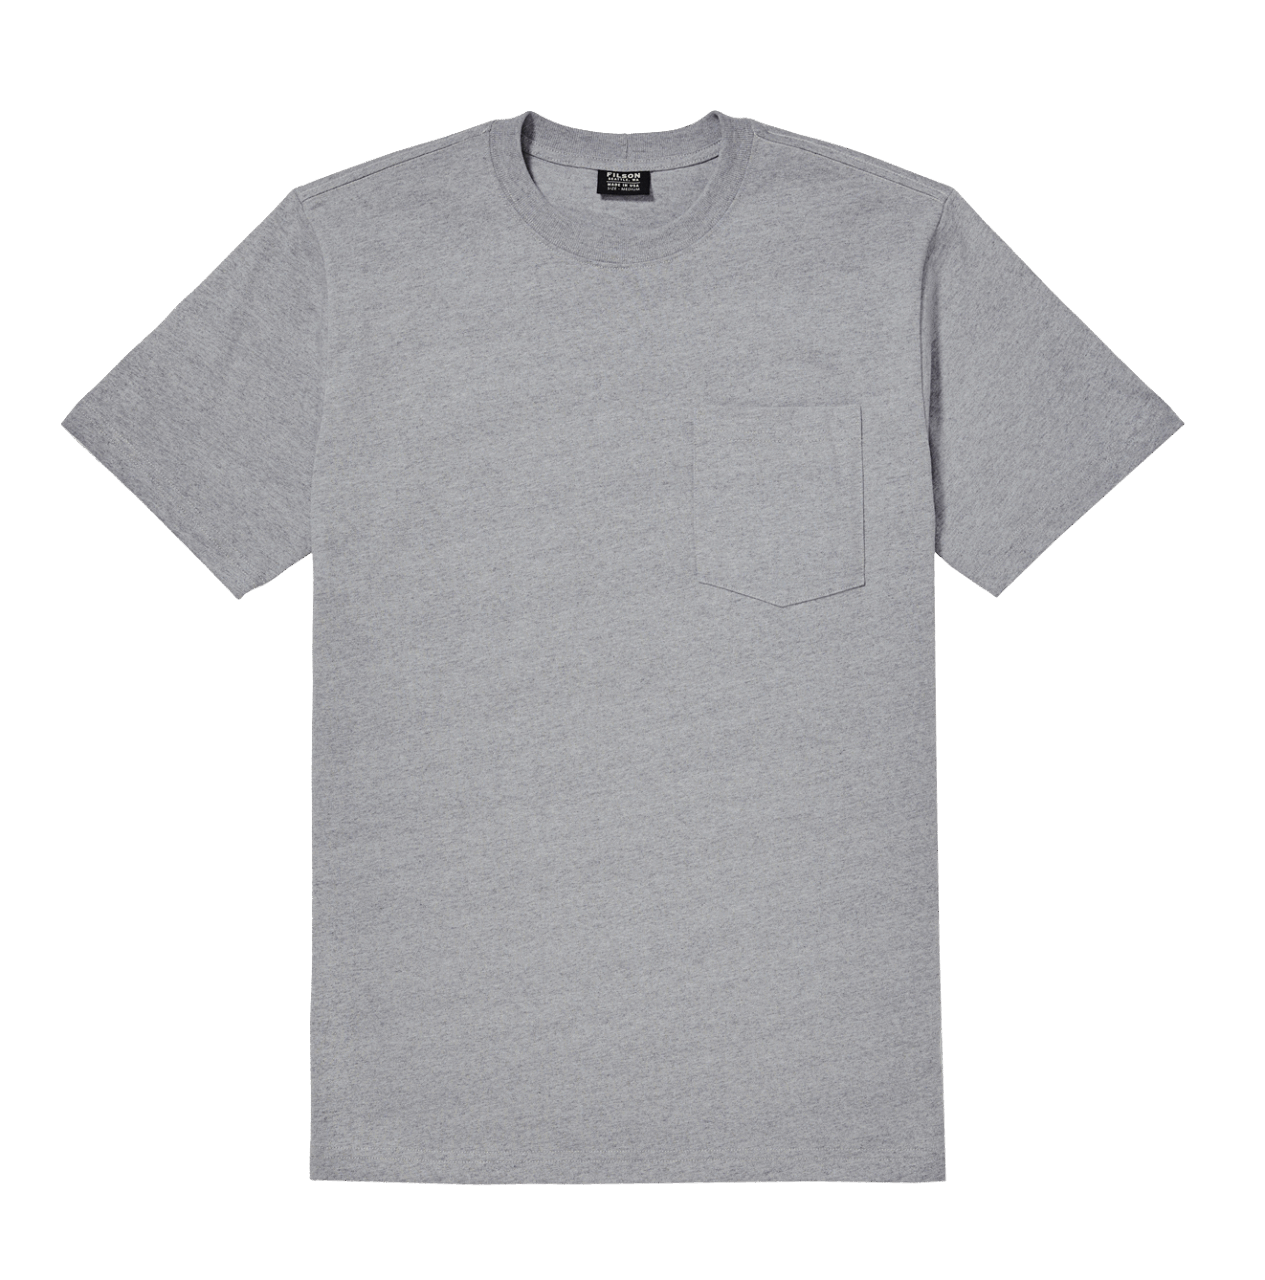 Filson Outfitter Solid One Pocket T-Shirt - grau